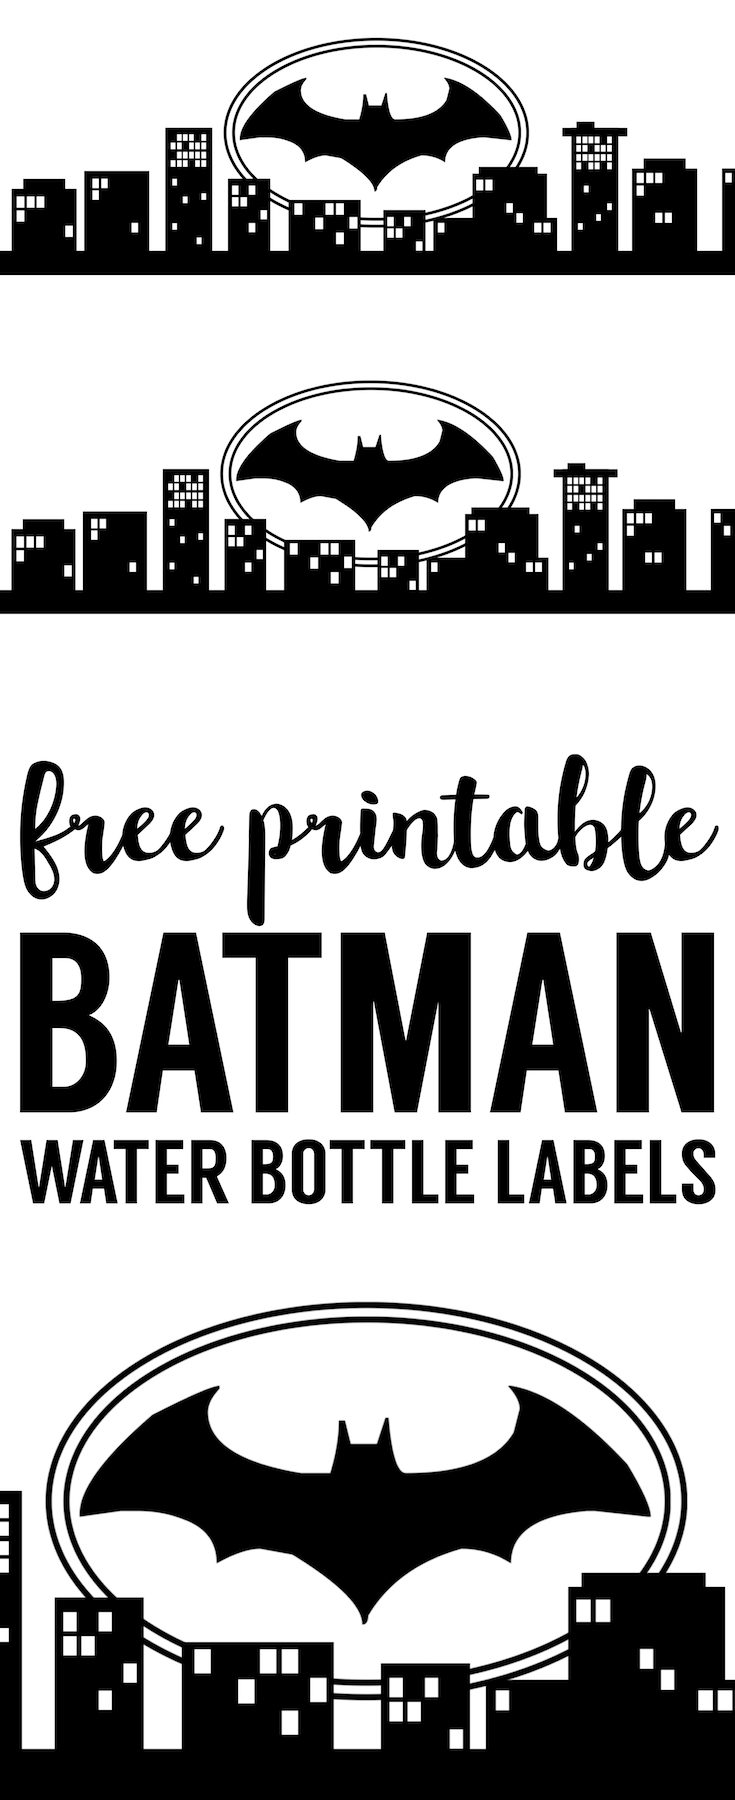 Batman Water Bottle Label Free Printable. Easy DIY Batman water bottle or juice box wrapper. Print this easy decor for your Batman birthday party, baby shower, Halloween, comic theme party.